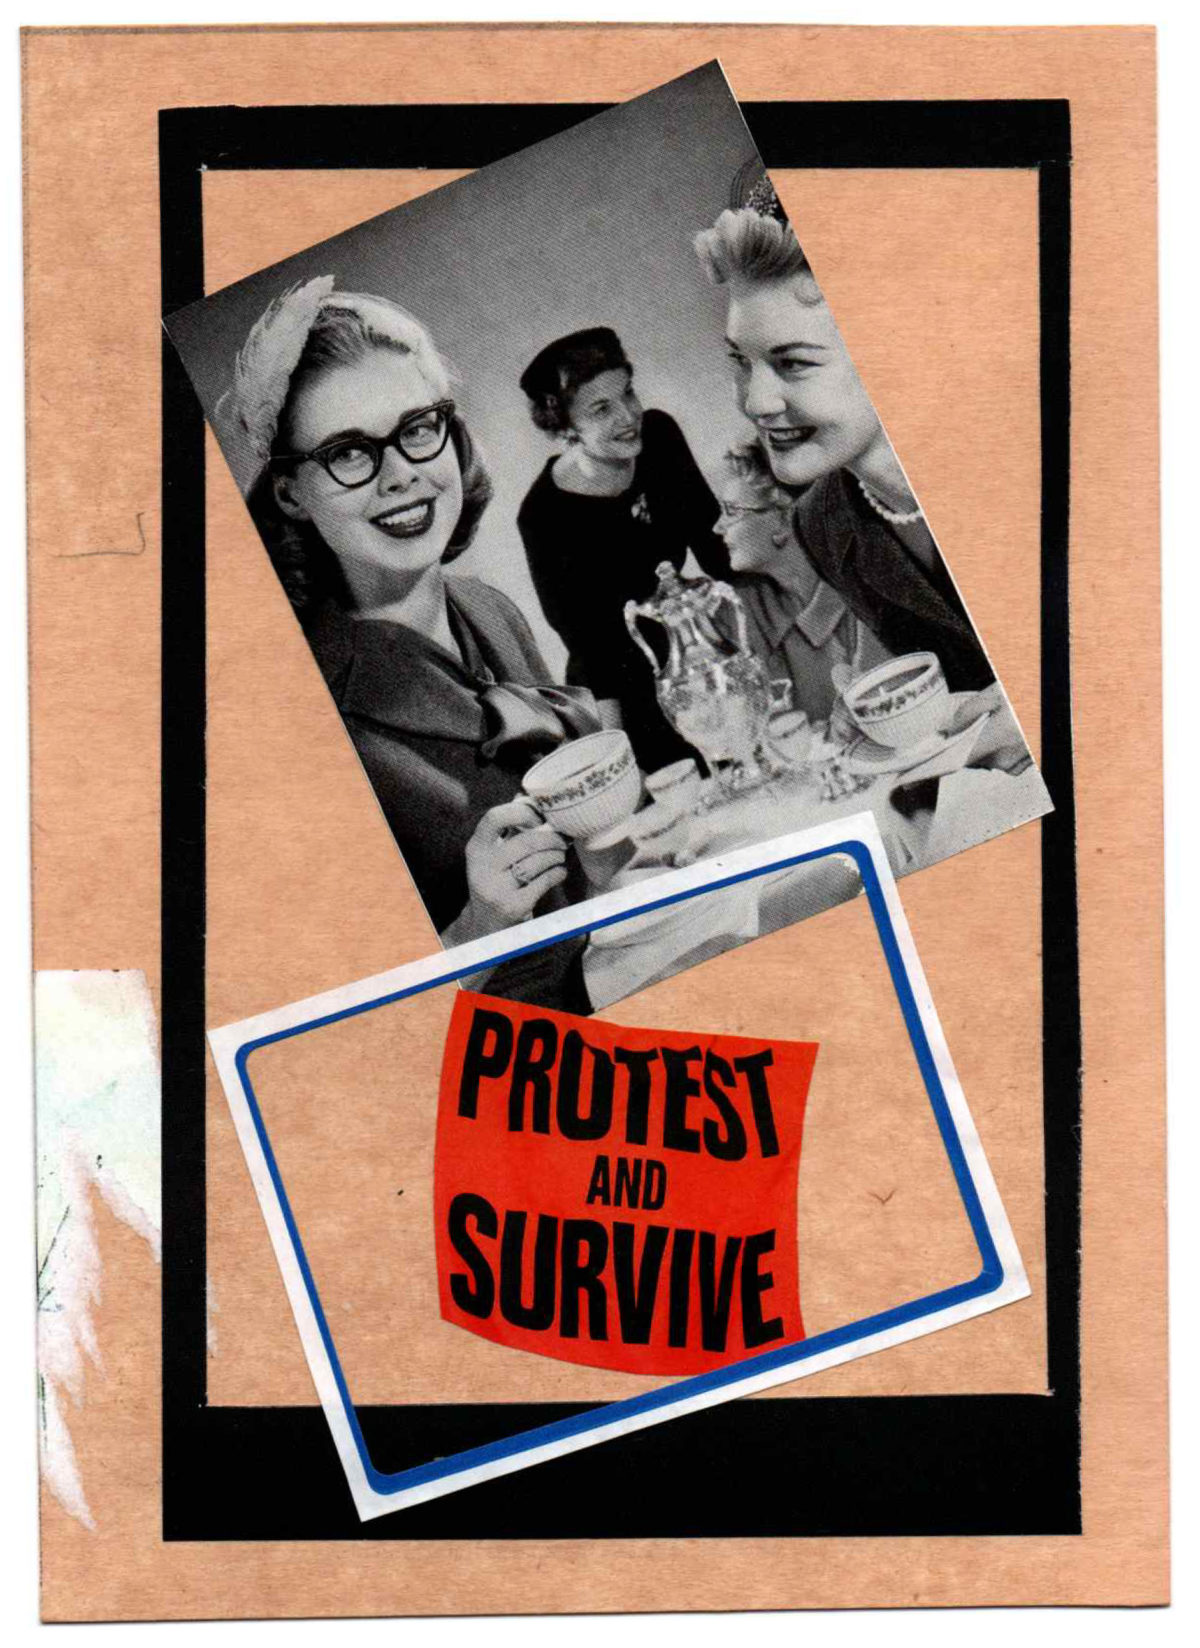 Gregorio Berchenko, Protest and Survive